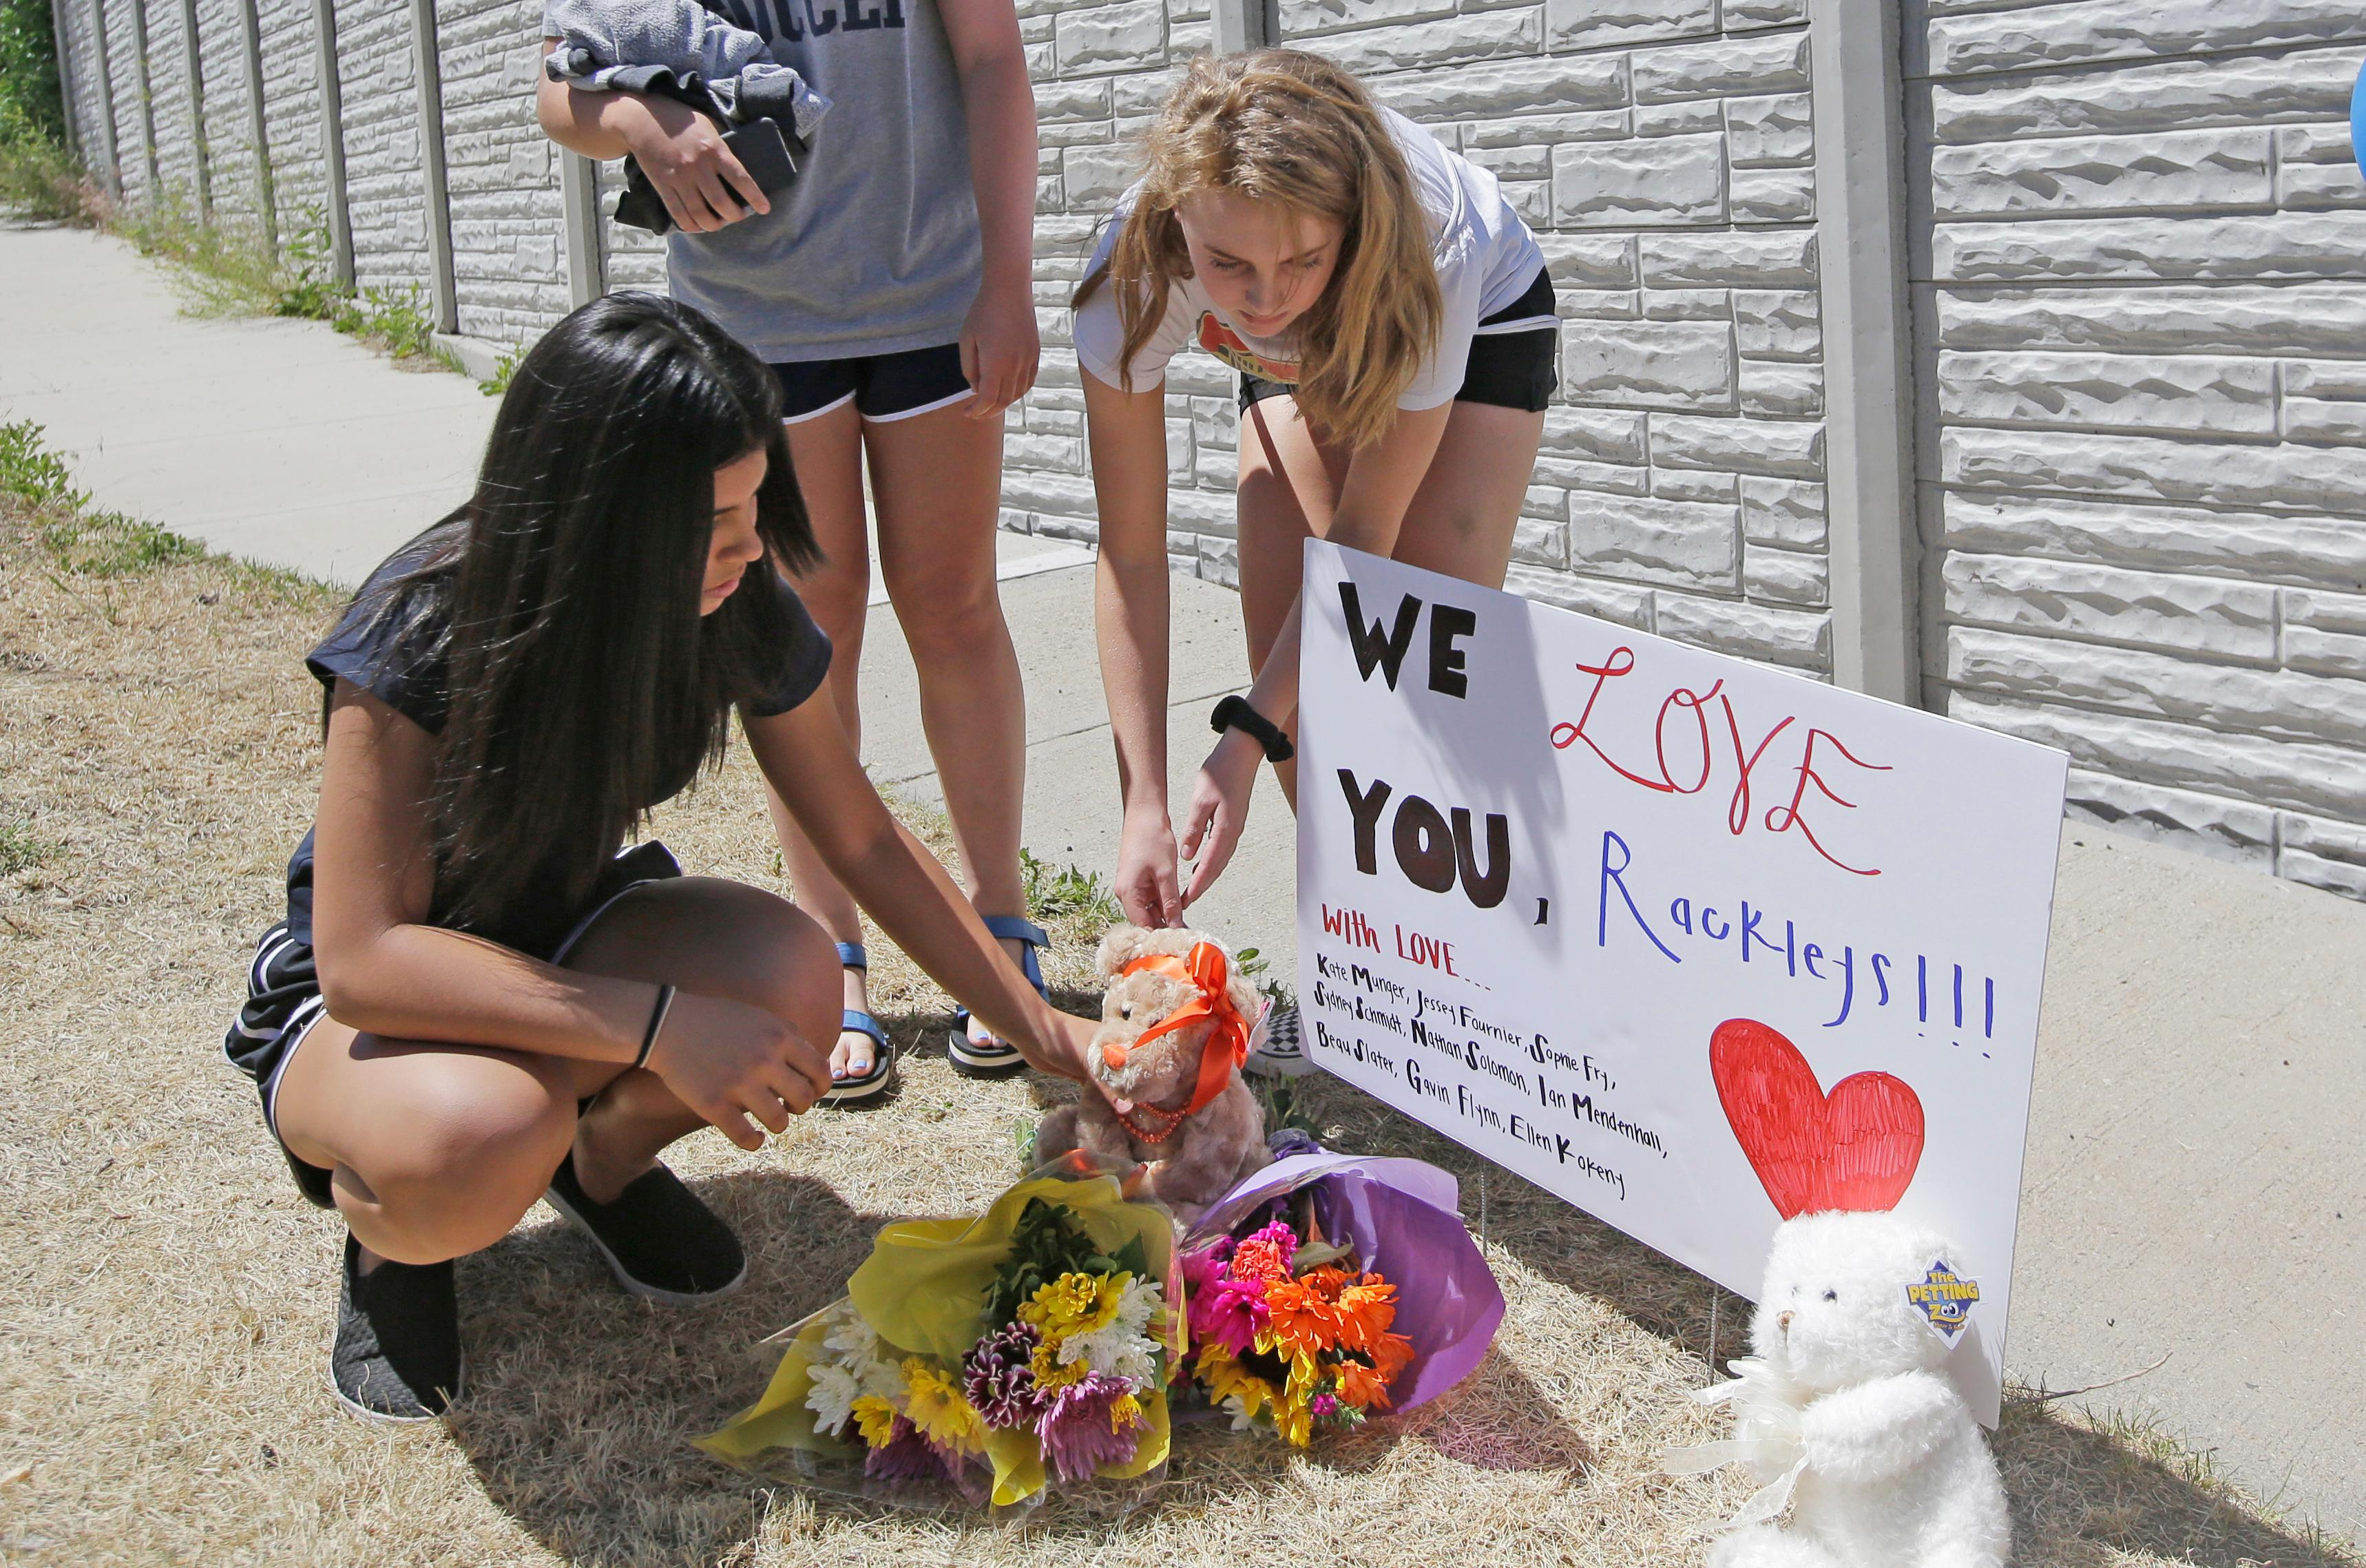 People leave items at a memorial for the victims of a fatal shooting Wednesday, June 7, 2017, in Sandy, Utah. Utah investigators and residents of a middle-class Salt Lake City suburb were trying Wednesday to understand what led a man to open fire on a woman and children inside a car leaving the woman and one of her sons dead, another son in critical condition and a girl injured. The suspect was found dead of a self-inflicted gunshot wound at the scene in a quiet neighborhood of the city of Sandy. (AP Photo/Rick Bowmer)